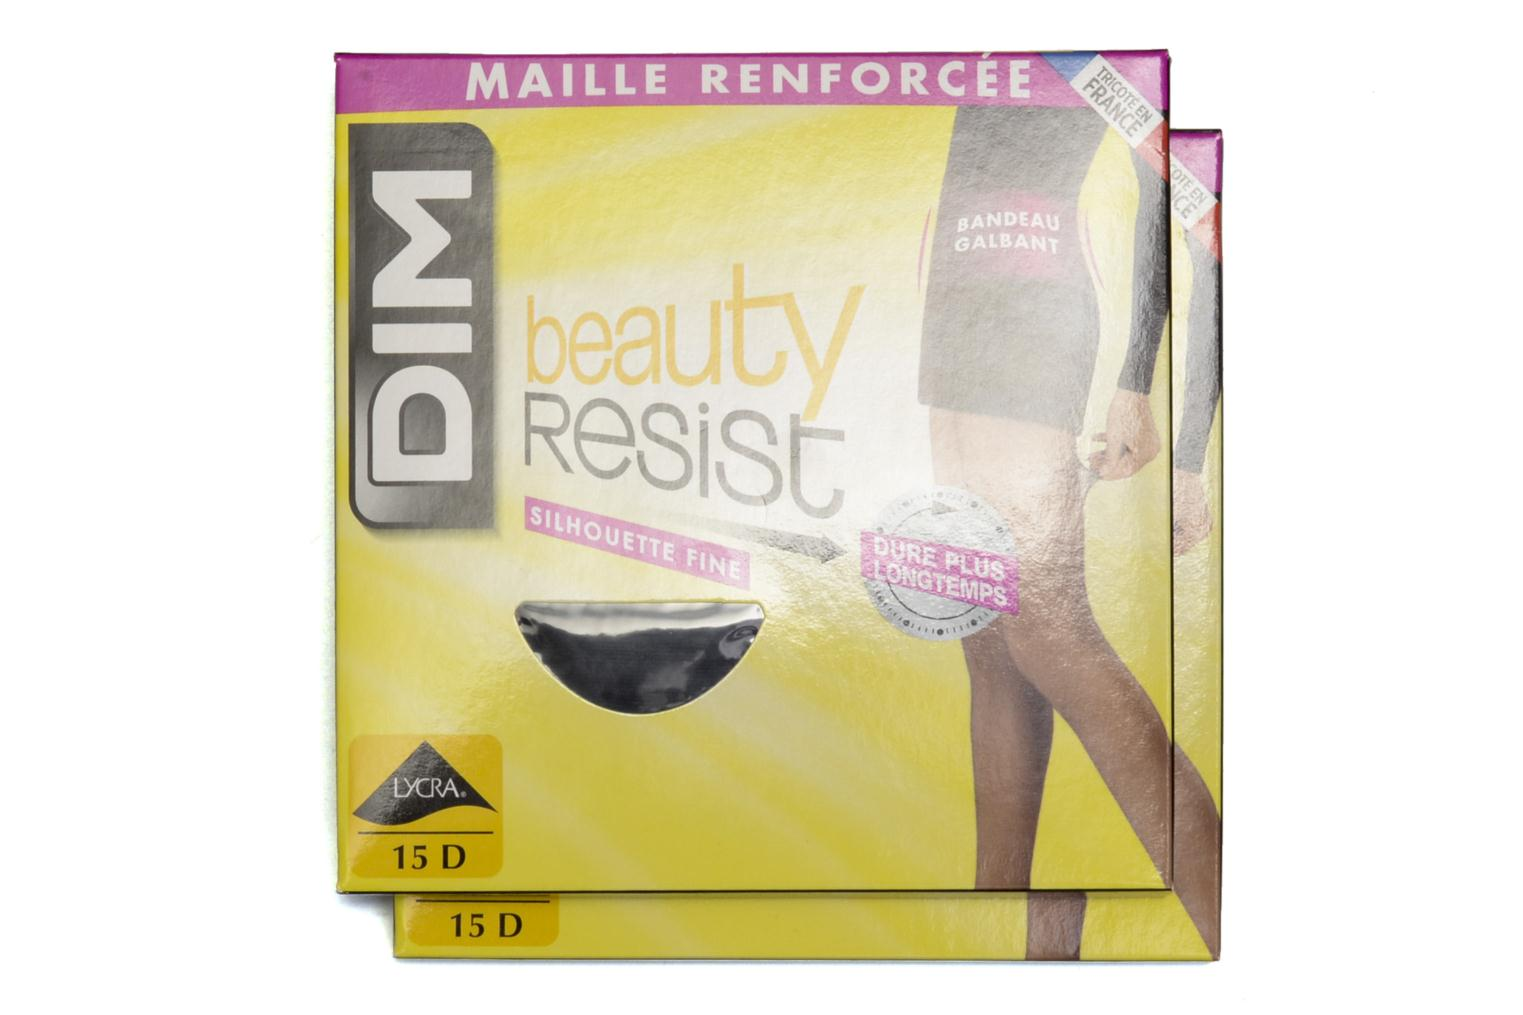 Socks & tights Dim Tights BEAUTY RESIST SILHOUETTE FINE Pack of 2 Black detailed view/ Pair view